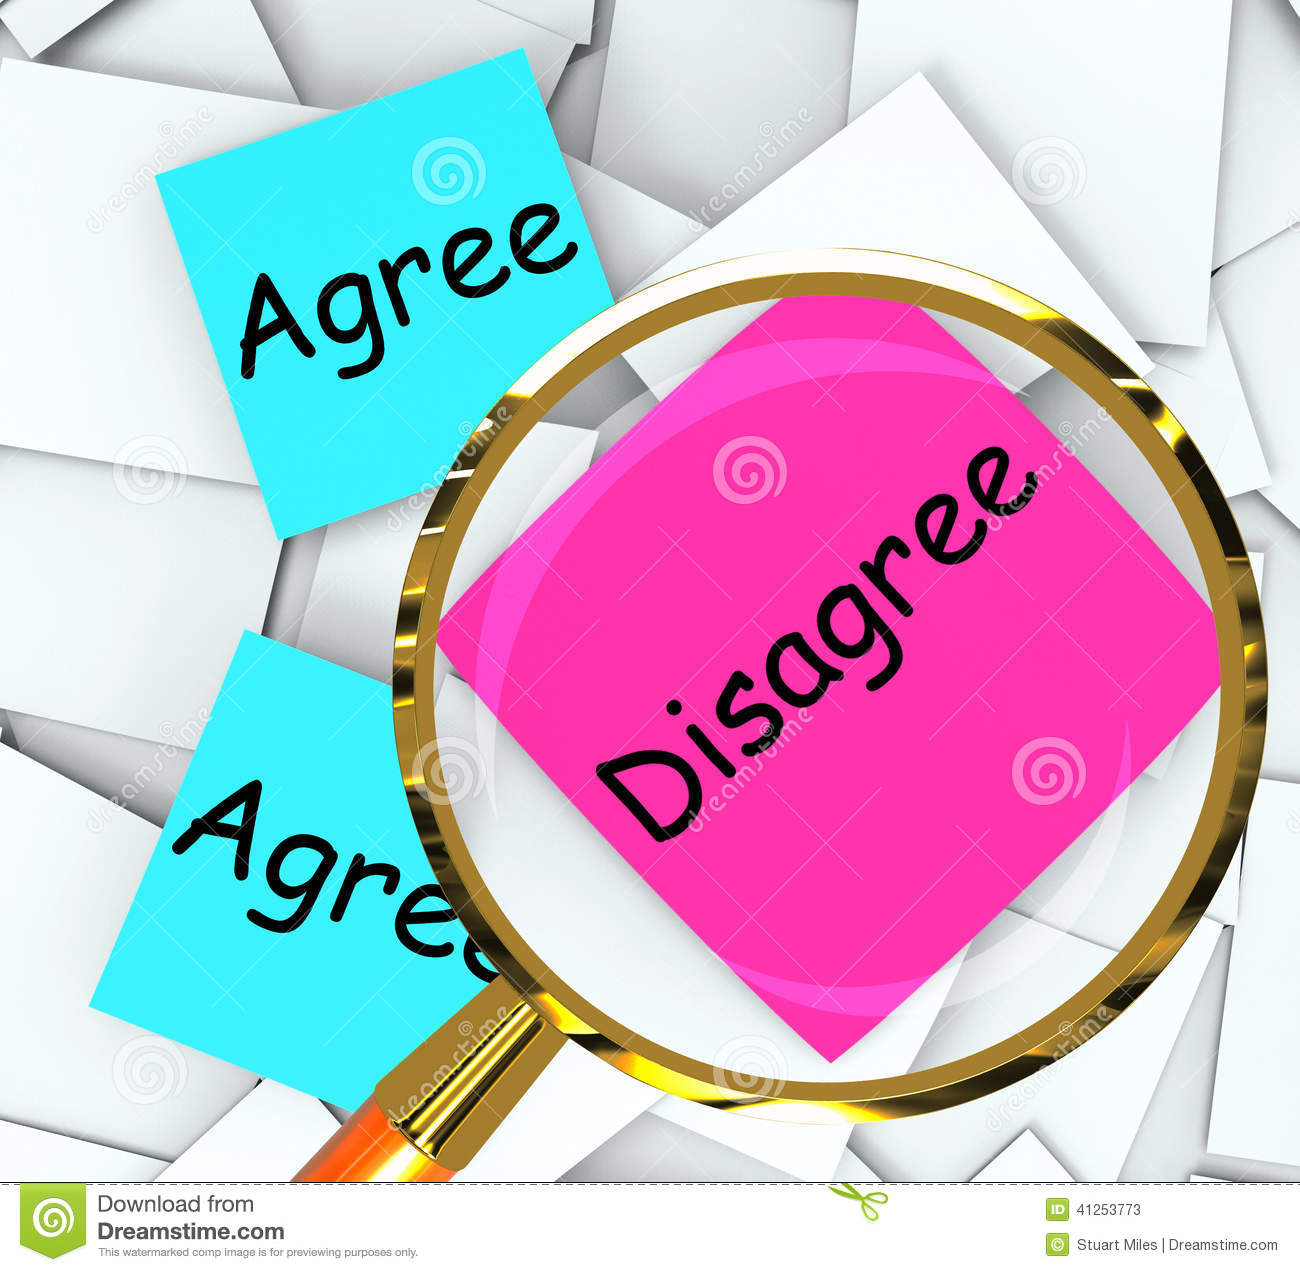 Disagreeing clipart graphic black and white library Disagreement Clipart   Clipart Panda - Free Clipart Images graphic black and white library